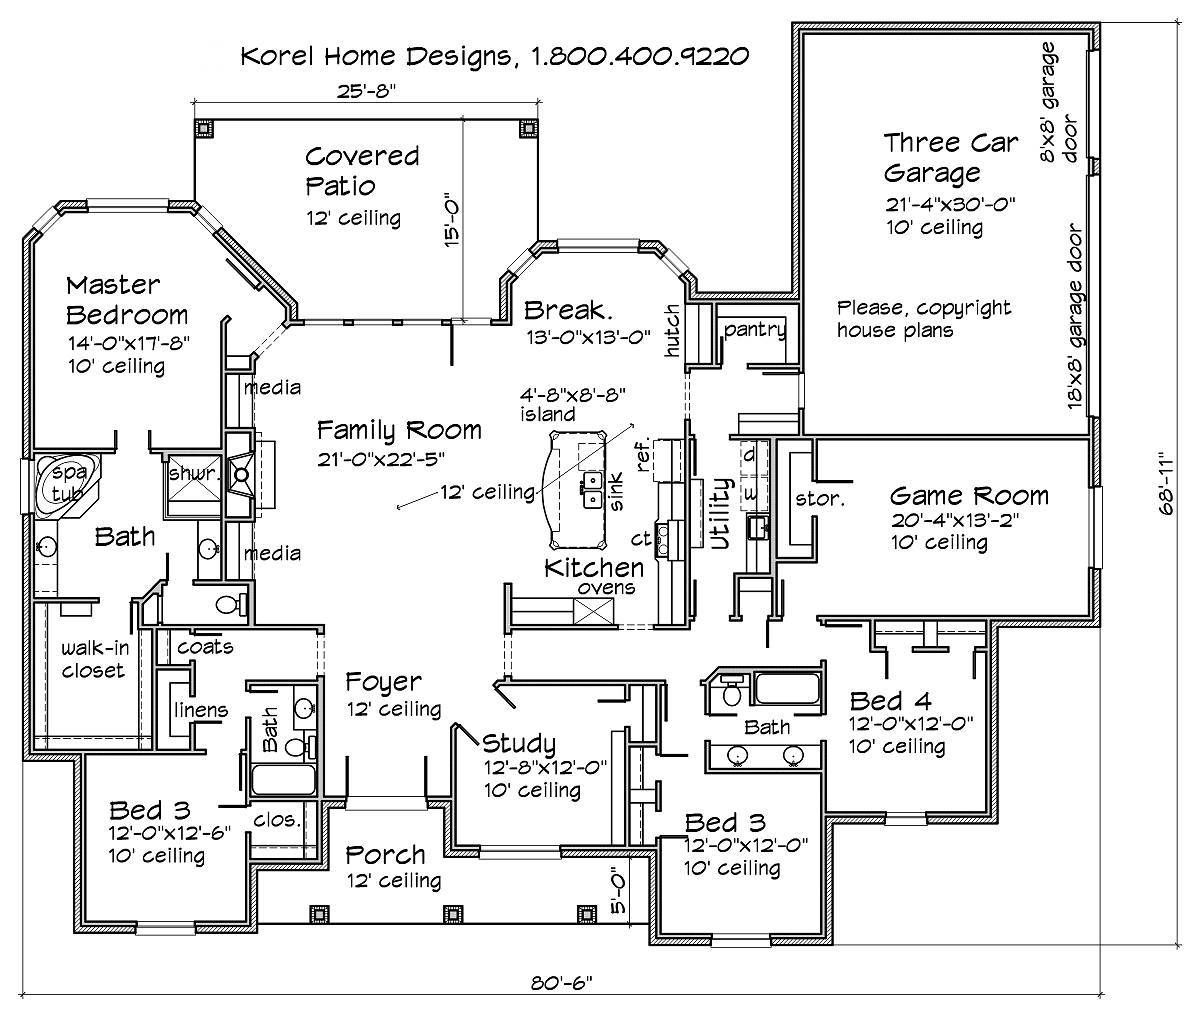 House Plans by Korel Home Designs / Bedroom to make into Needlepoint ...